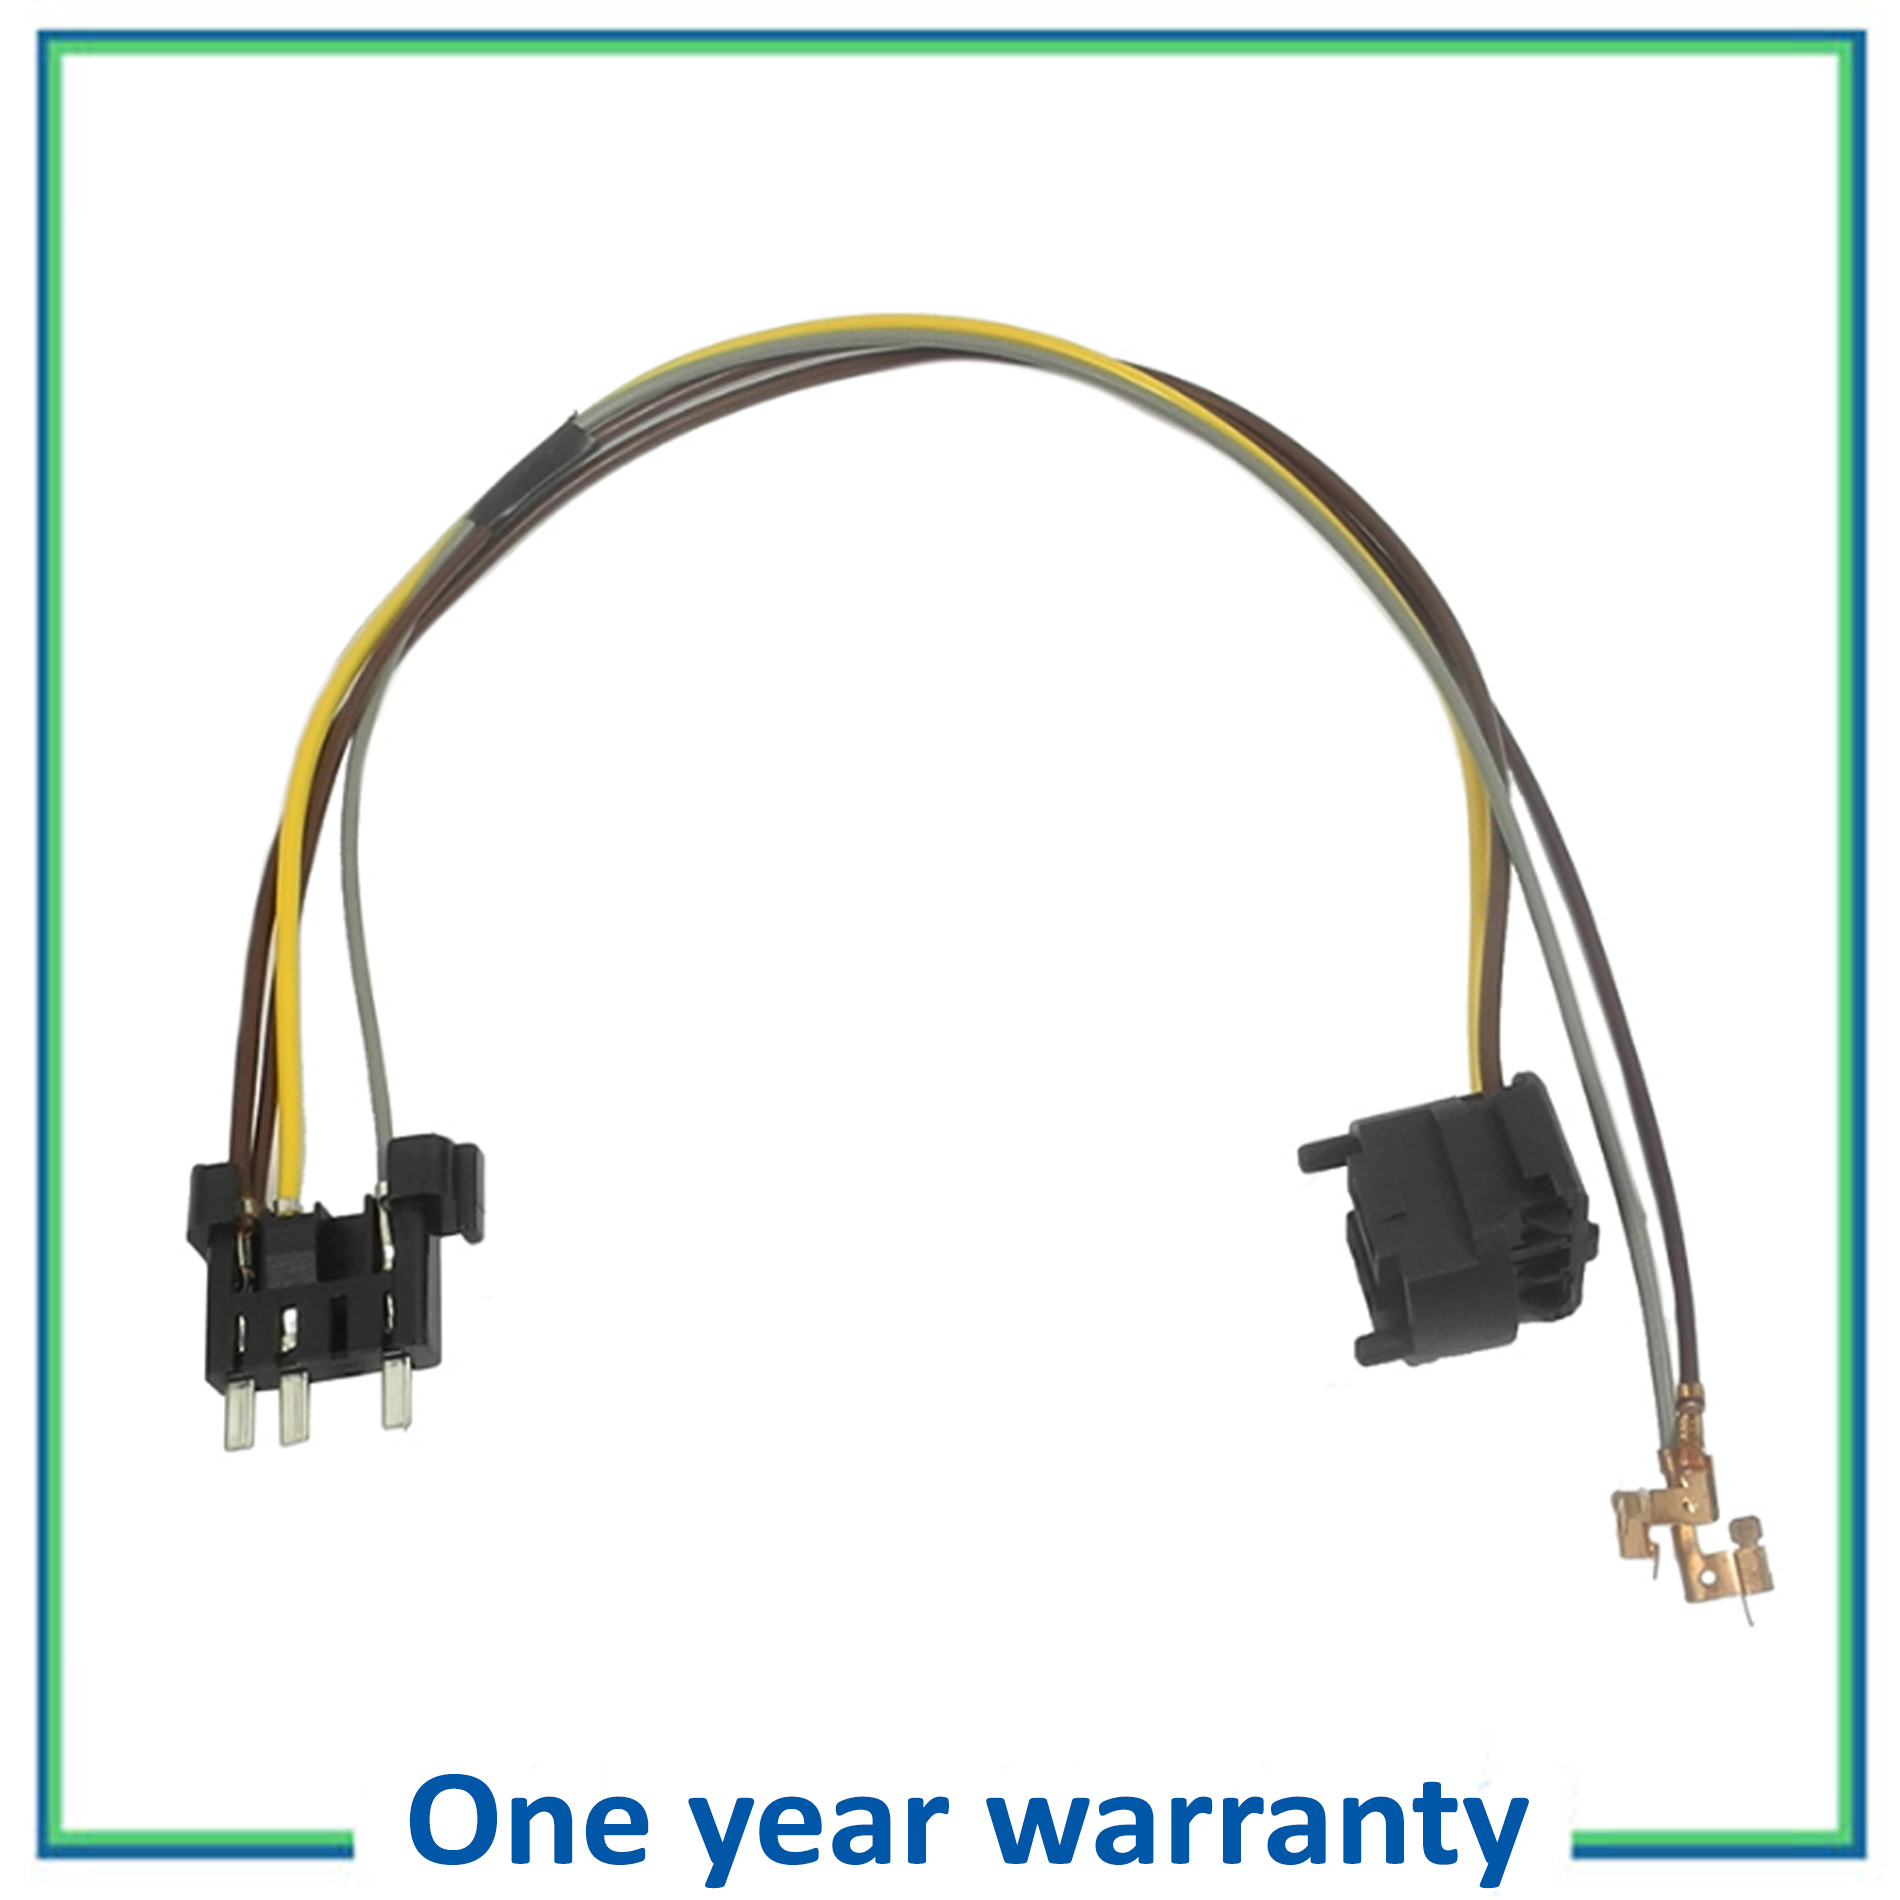 hight resolution of details about for left headlight wiring harness repair kit d123l w221 e280 e300 e320 e350 e55